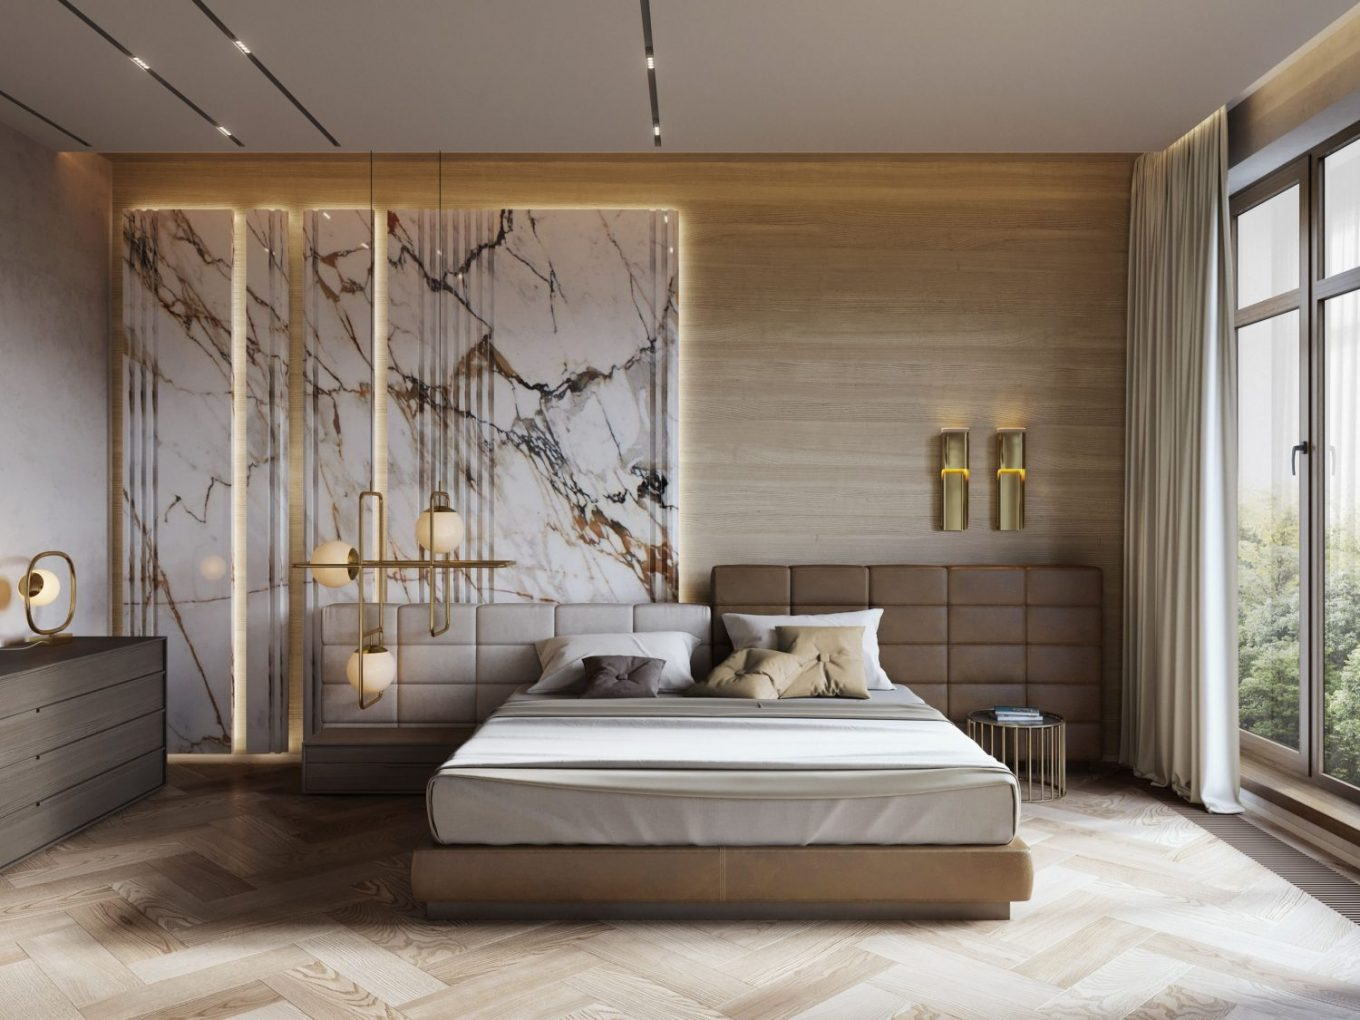 bedroom ideas Upgrade Your Decor With These Amazing Bedroom Ideas  1e1914a4caa5c29168699020b9c20522 scaled